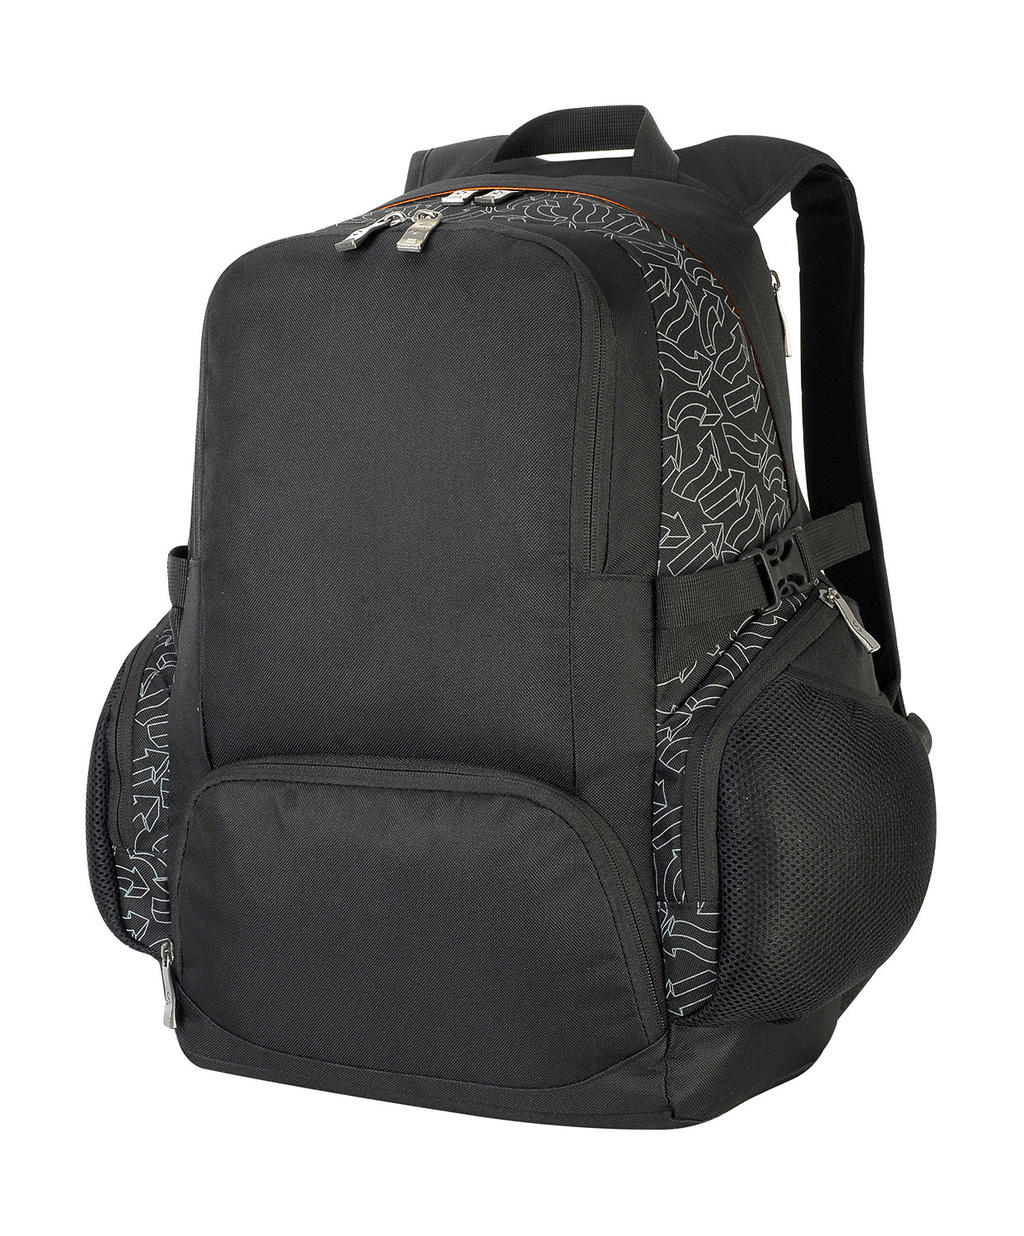 shugon rucksack backpack reisetasche bestickbare tasche neu ebay. Black Bedroom Furniture Sets. Home Design Ideas